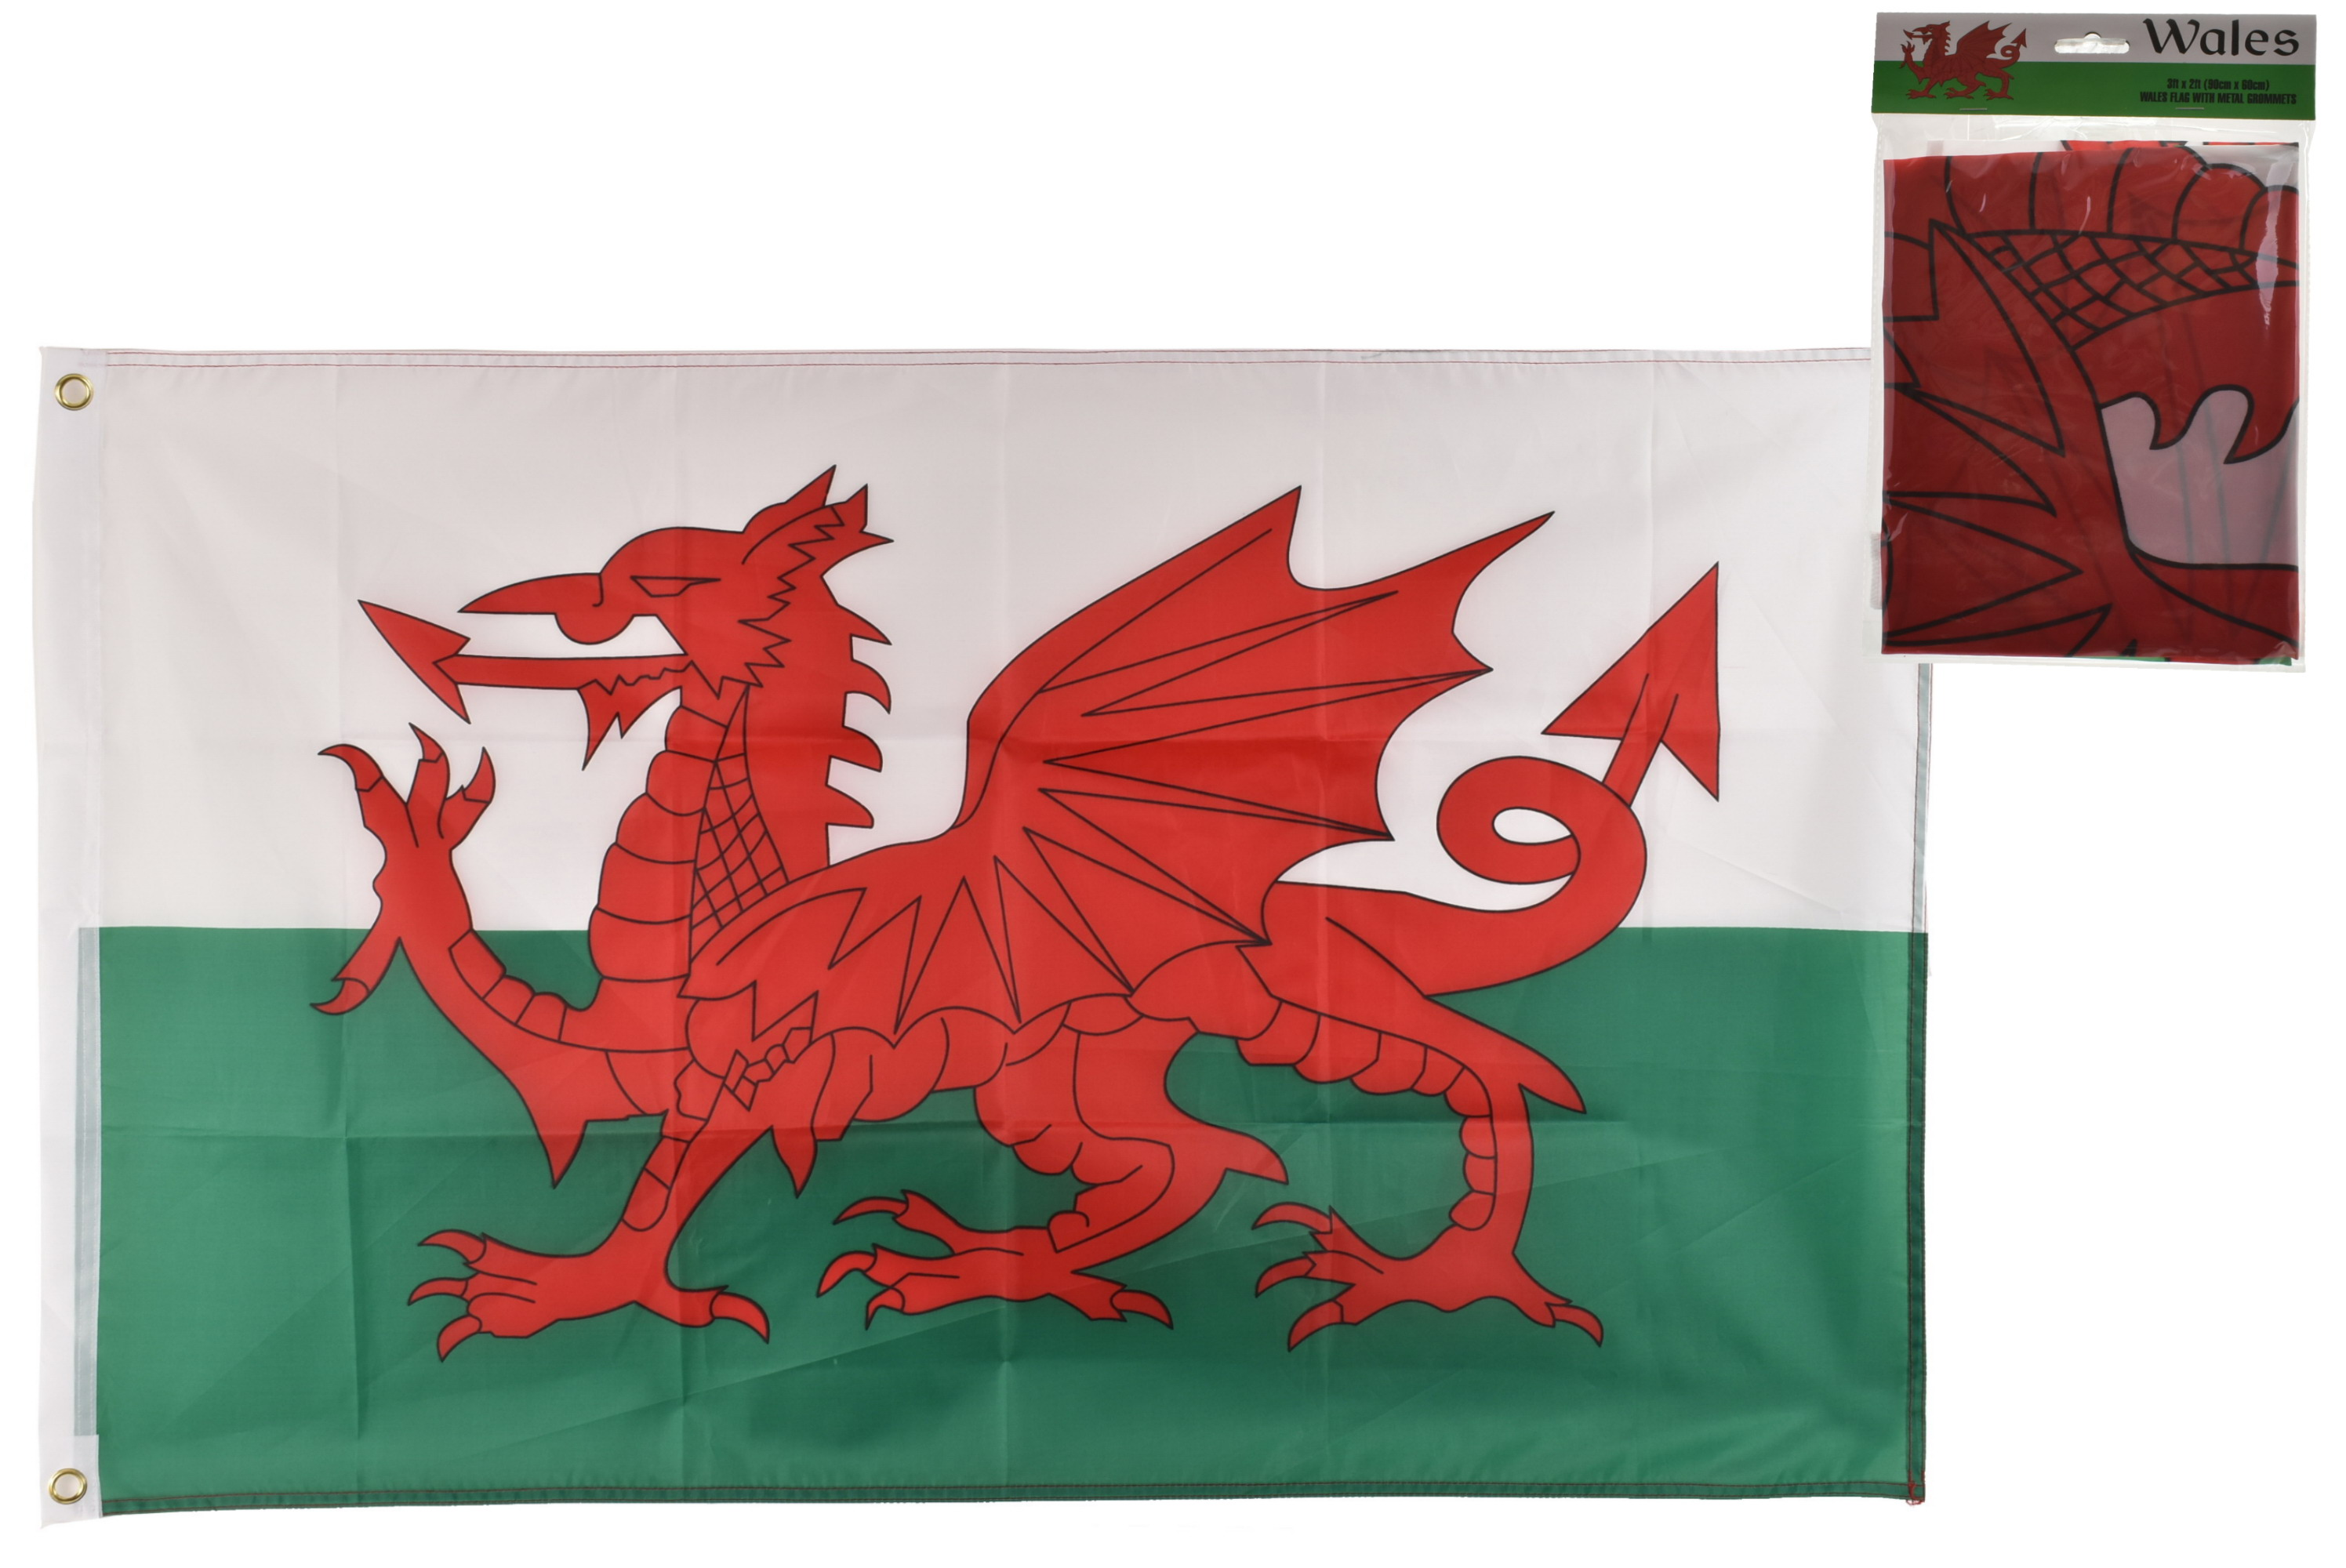 3' x 2' Wales Flag With Metal Grommets